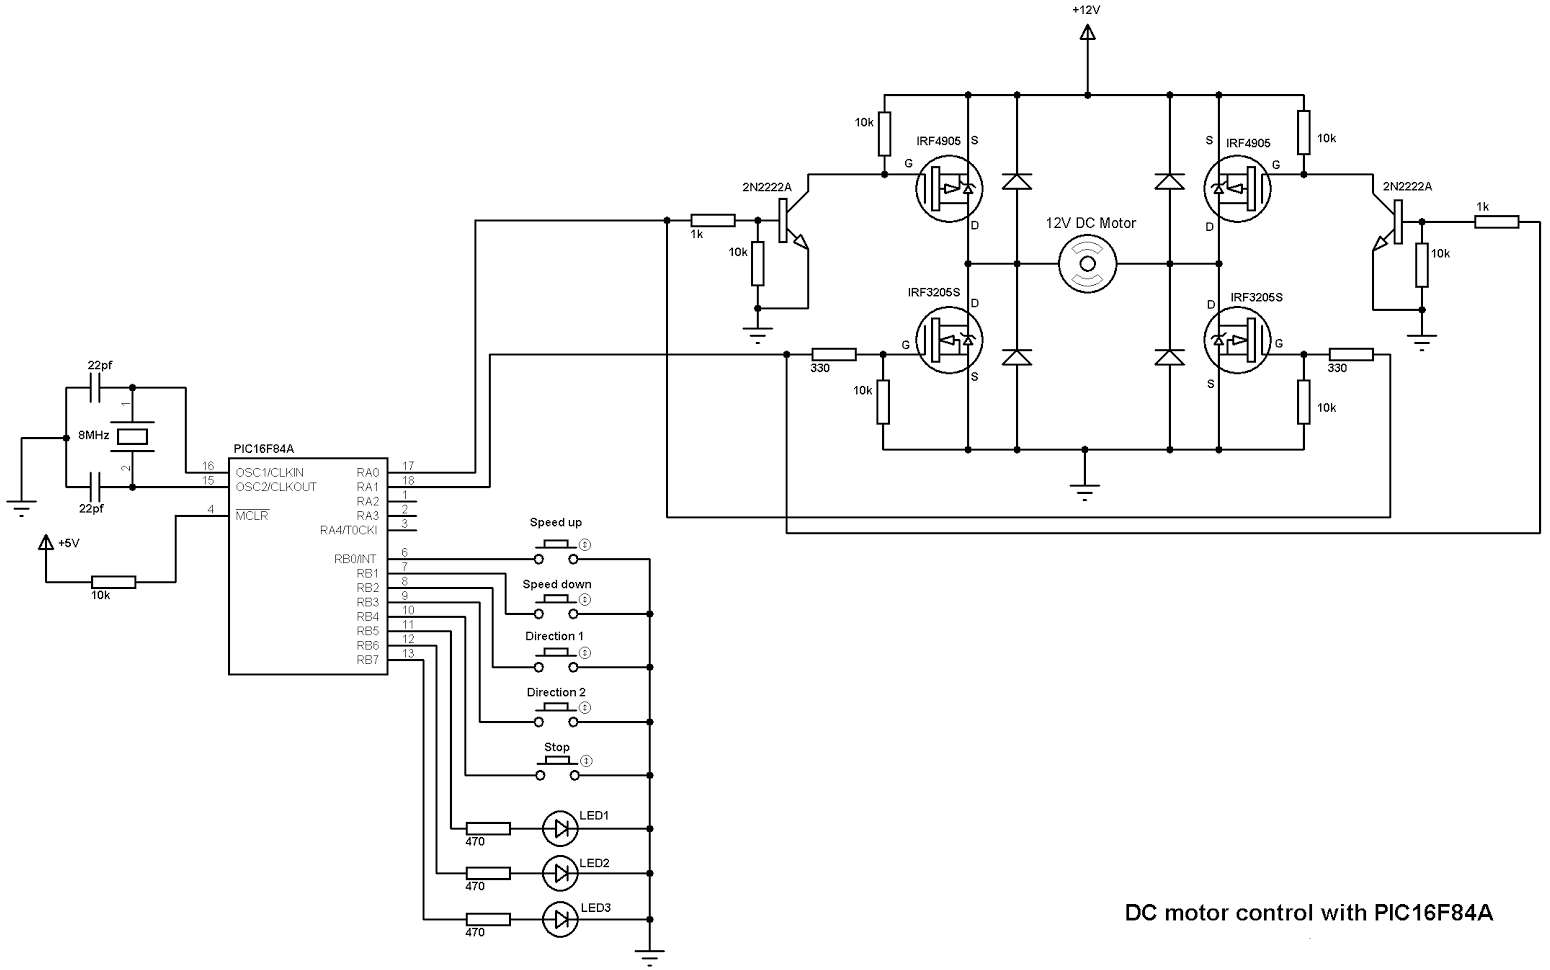 Dc Motor Speed And Direction Control With Pic16f84a Ccs C Circuit Drawing For Controller